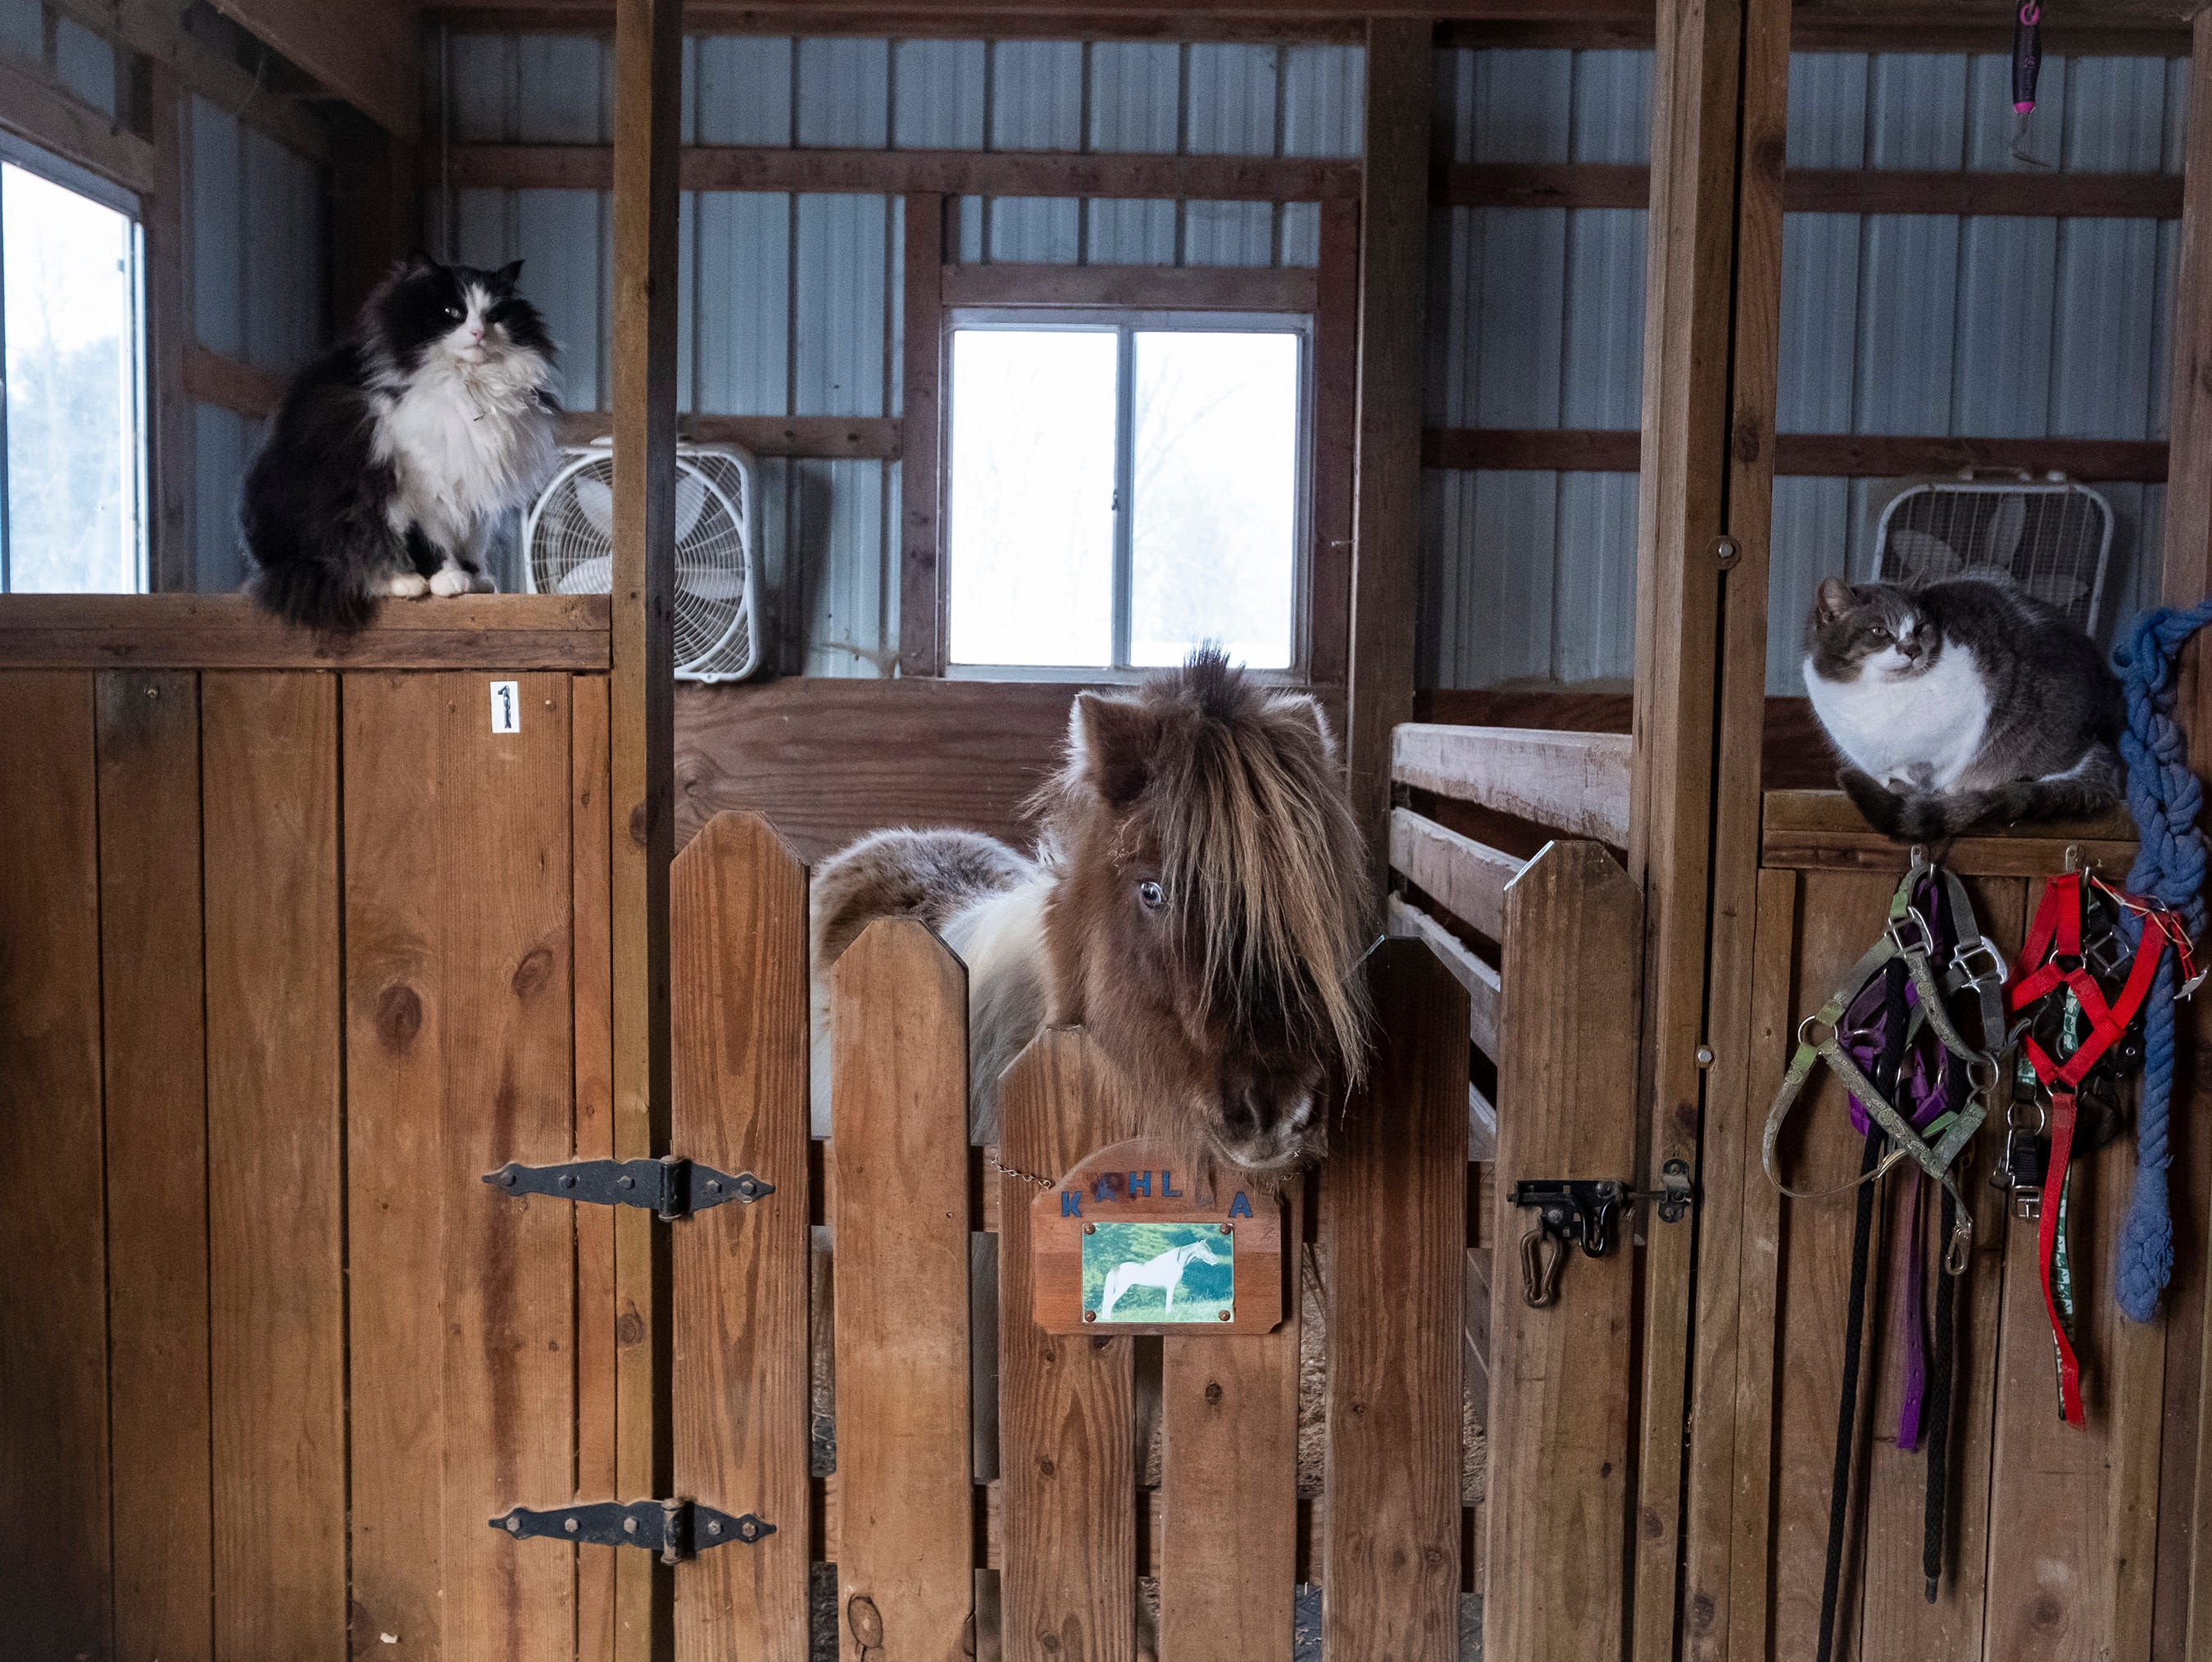 Two of the seven barn cats at Saving Grace Miniature Horse Rescue sit on the walls of a stall next to Kahlua, one of the farm's rescues.